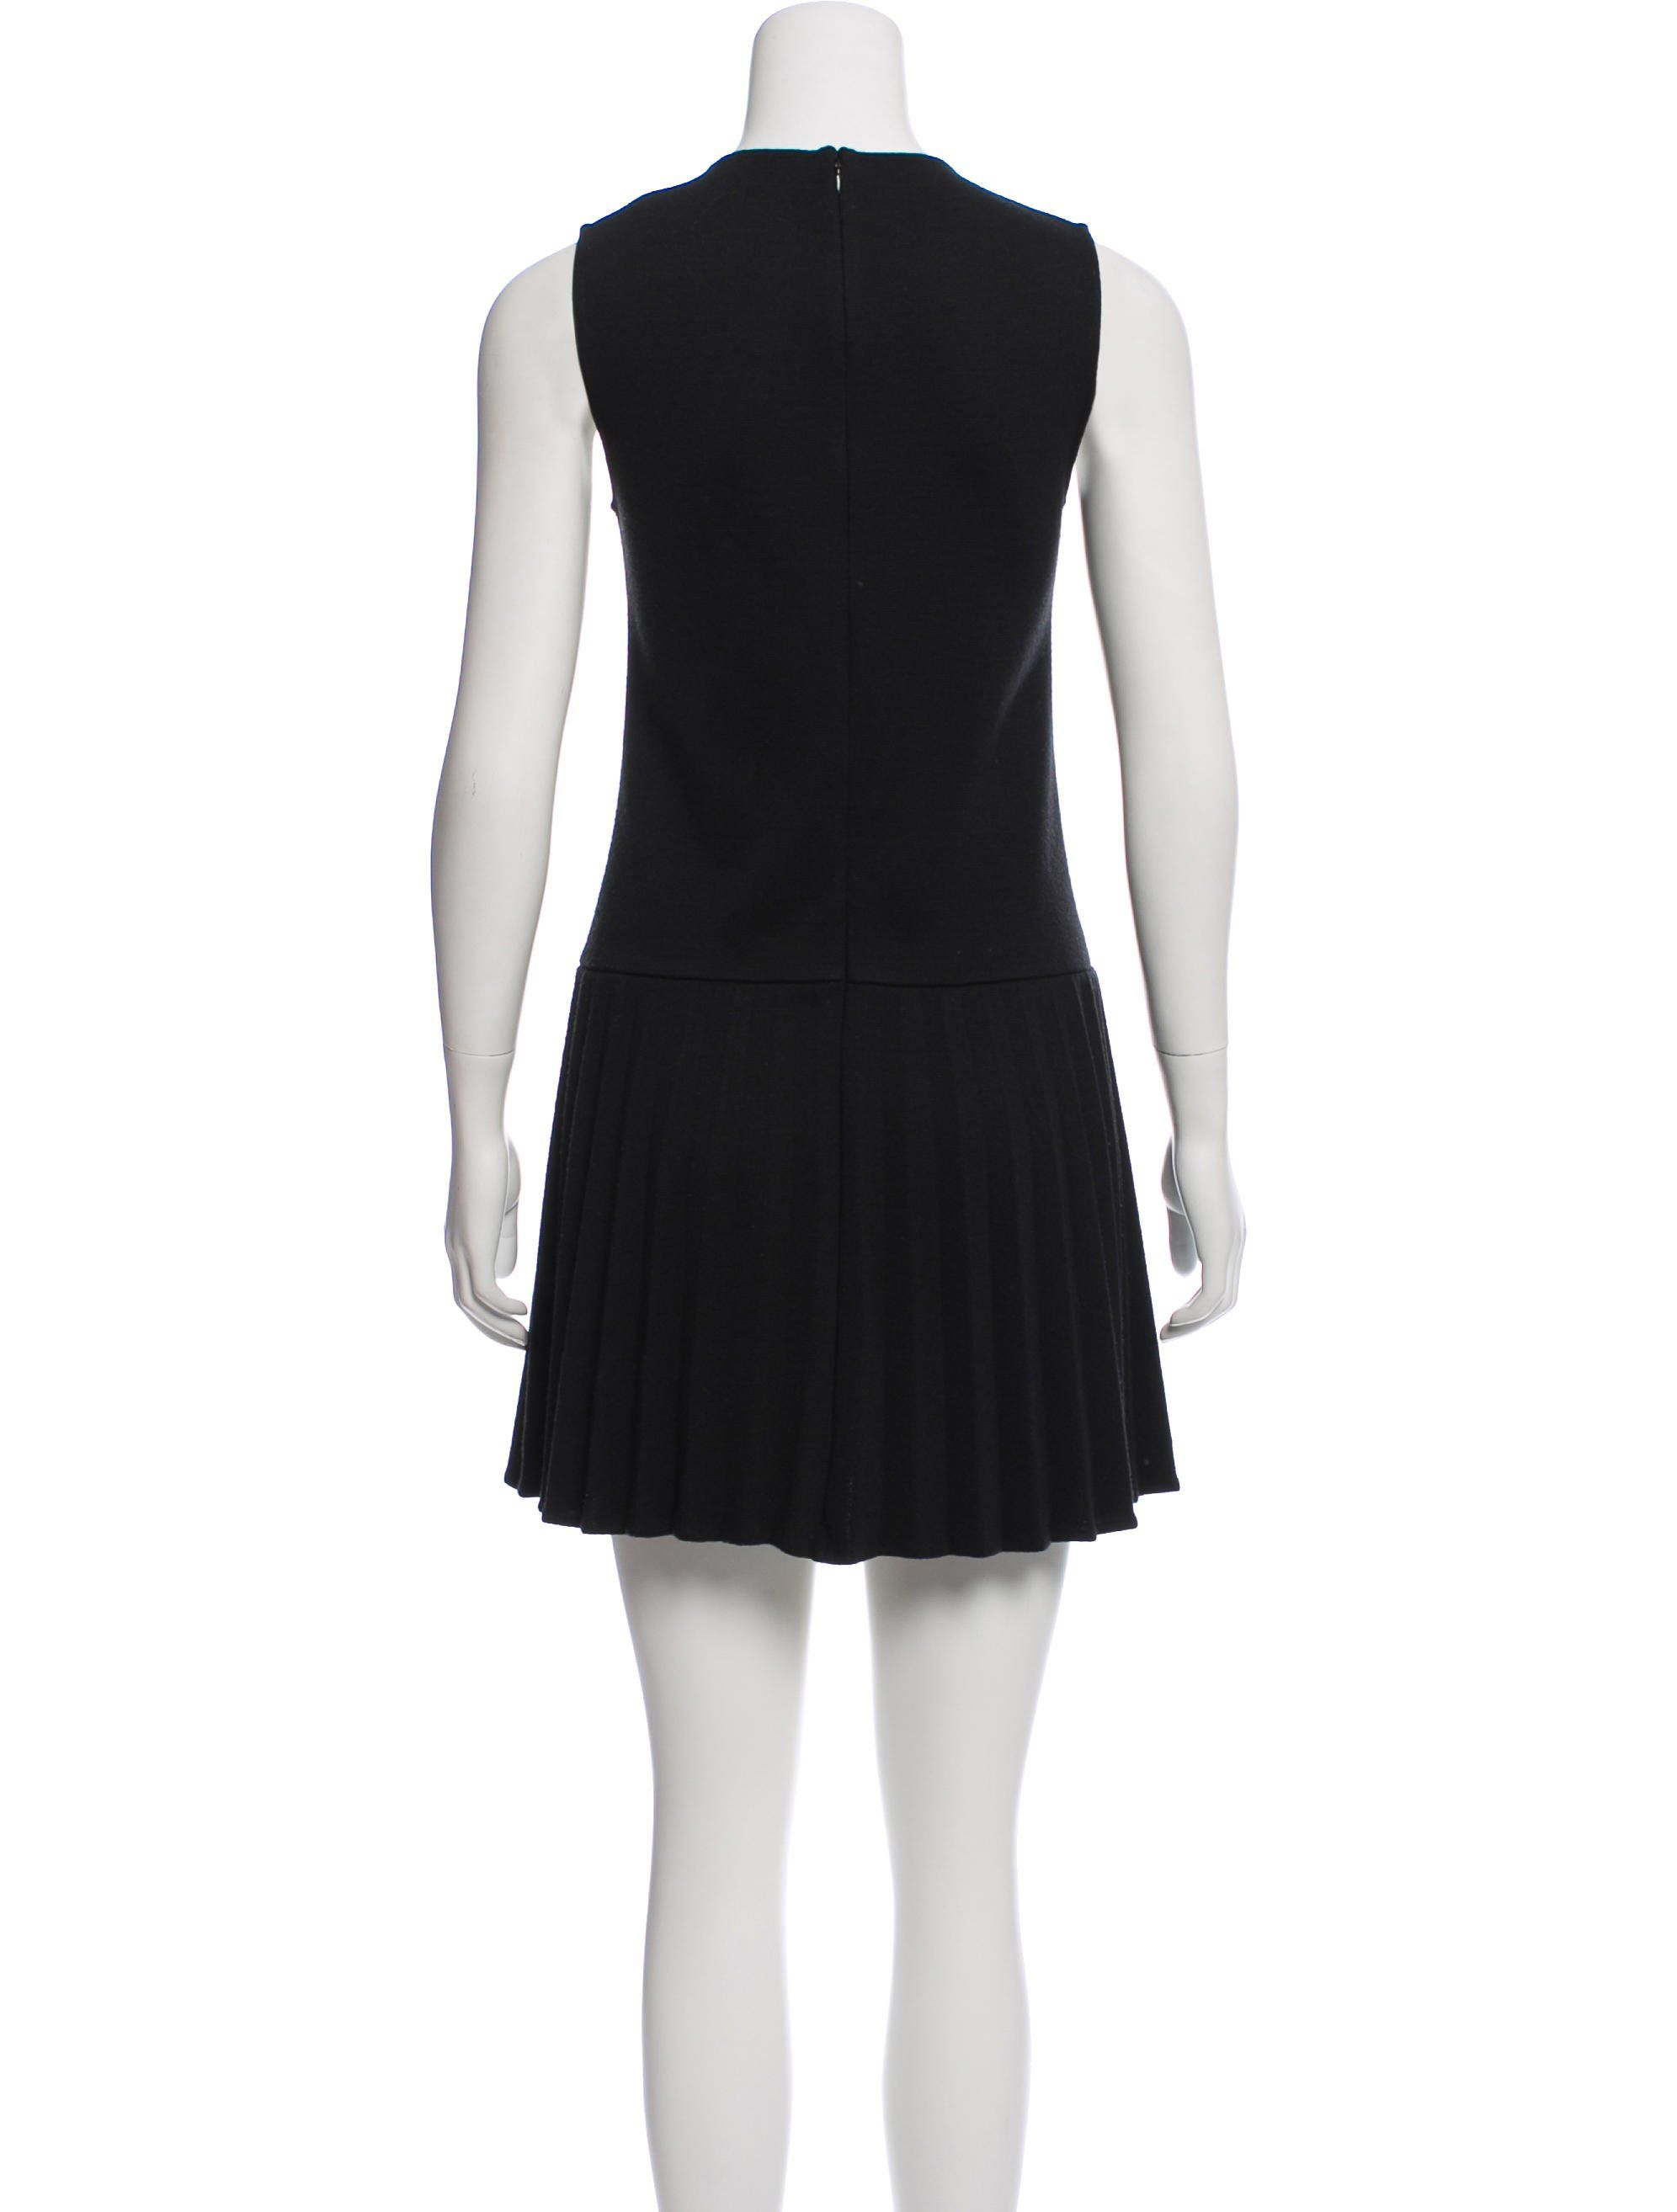 1a7fa2225a990 Black Theory textured sleeveless mini dress featuring pleat detail at skirt  and concealed zip closure at center back.